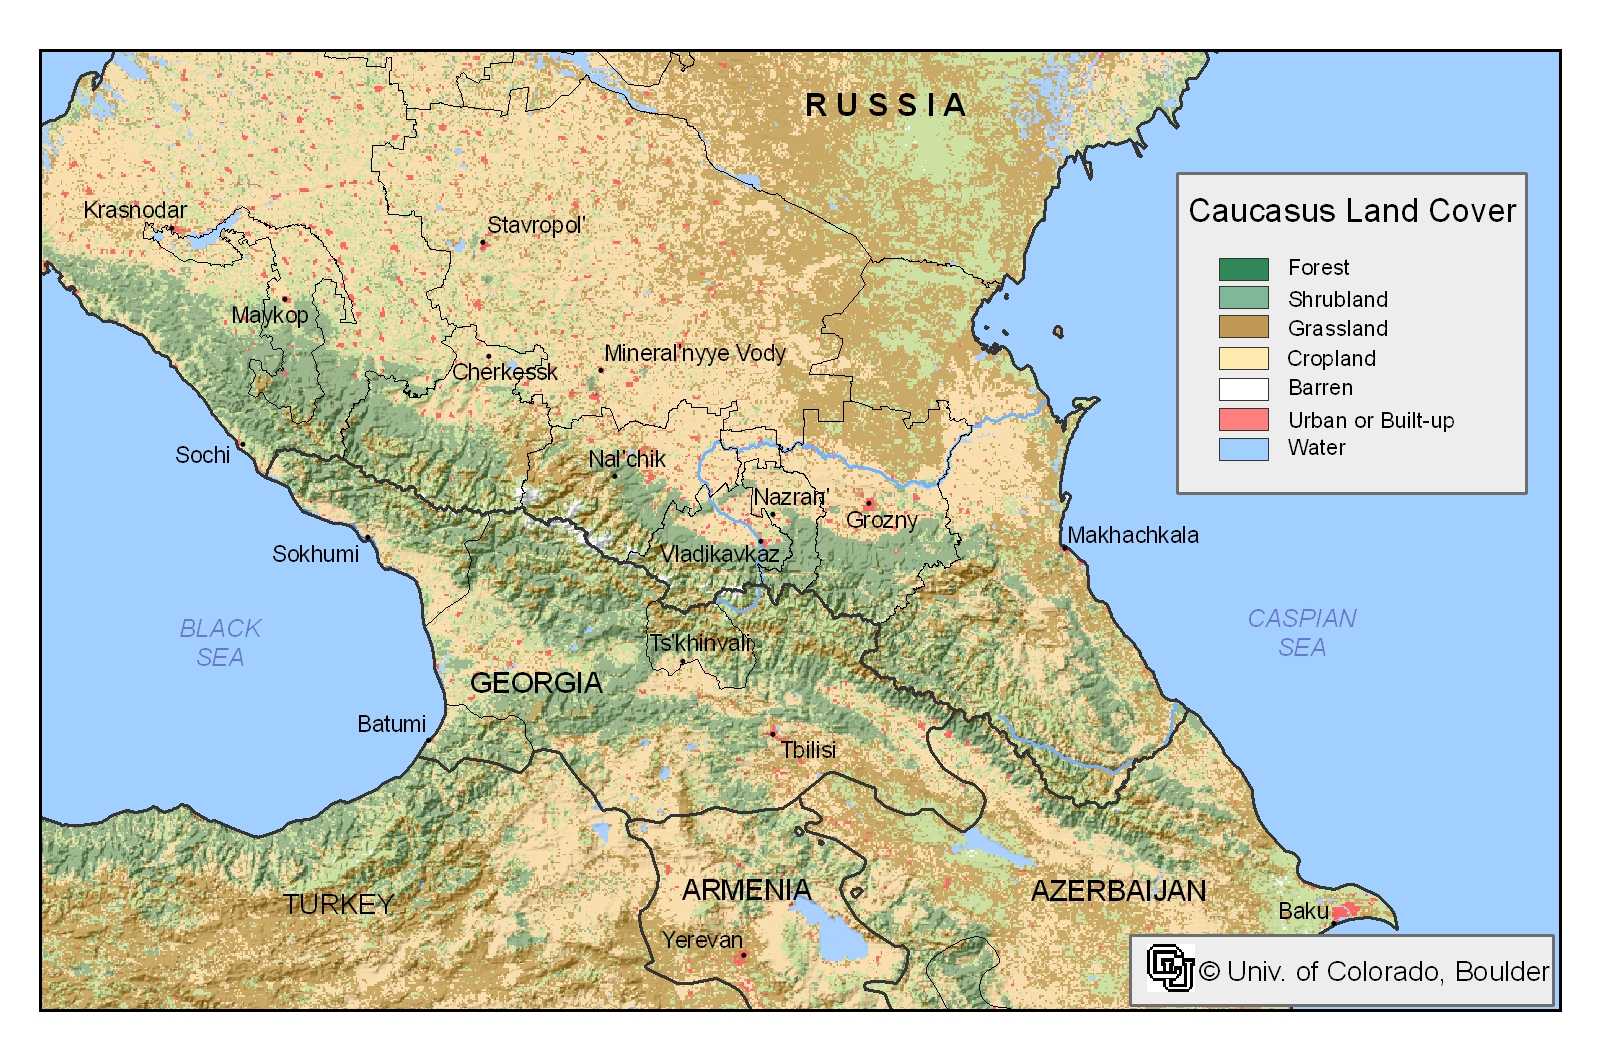 Download Your Maps HERE » caucasus mountains map | World Maps Collection